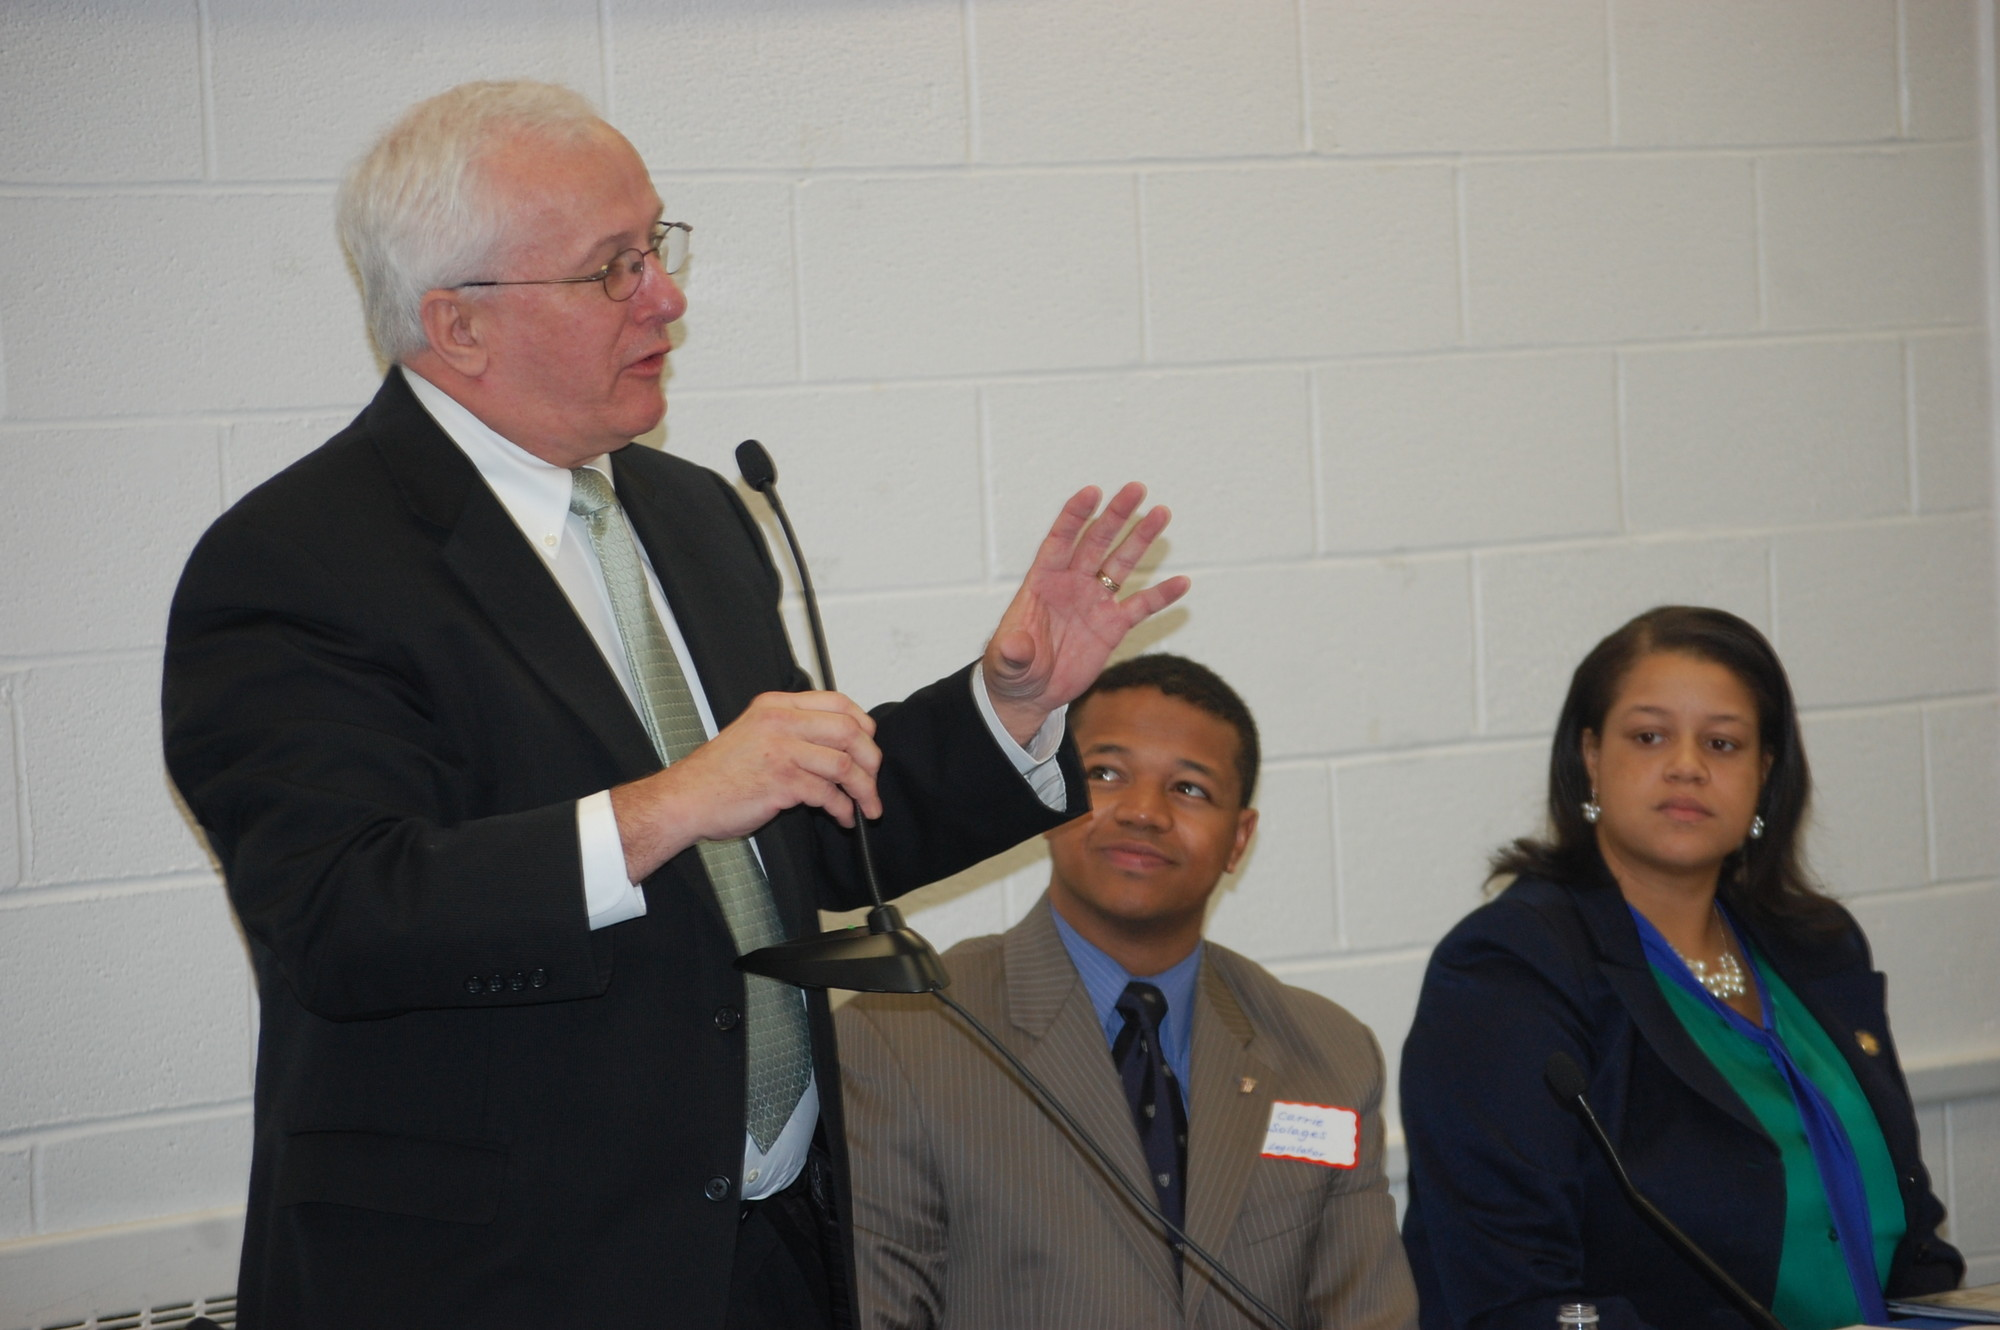 Town Councilman Jim Darcy answers a question as Legislator Carrie Solages and Assemblywoman Michaelle Solages look on.